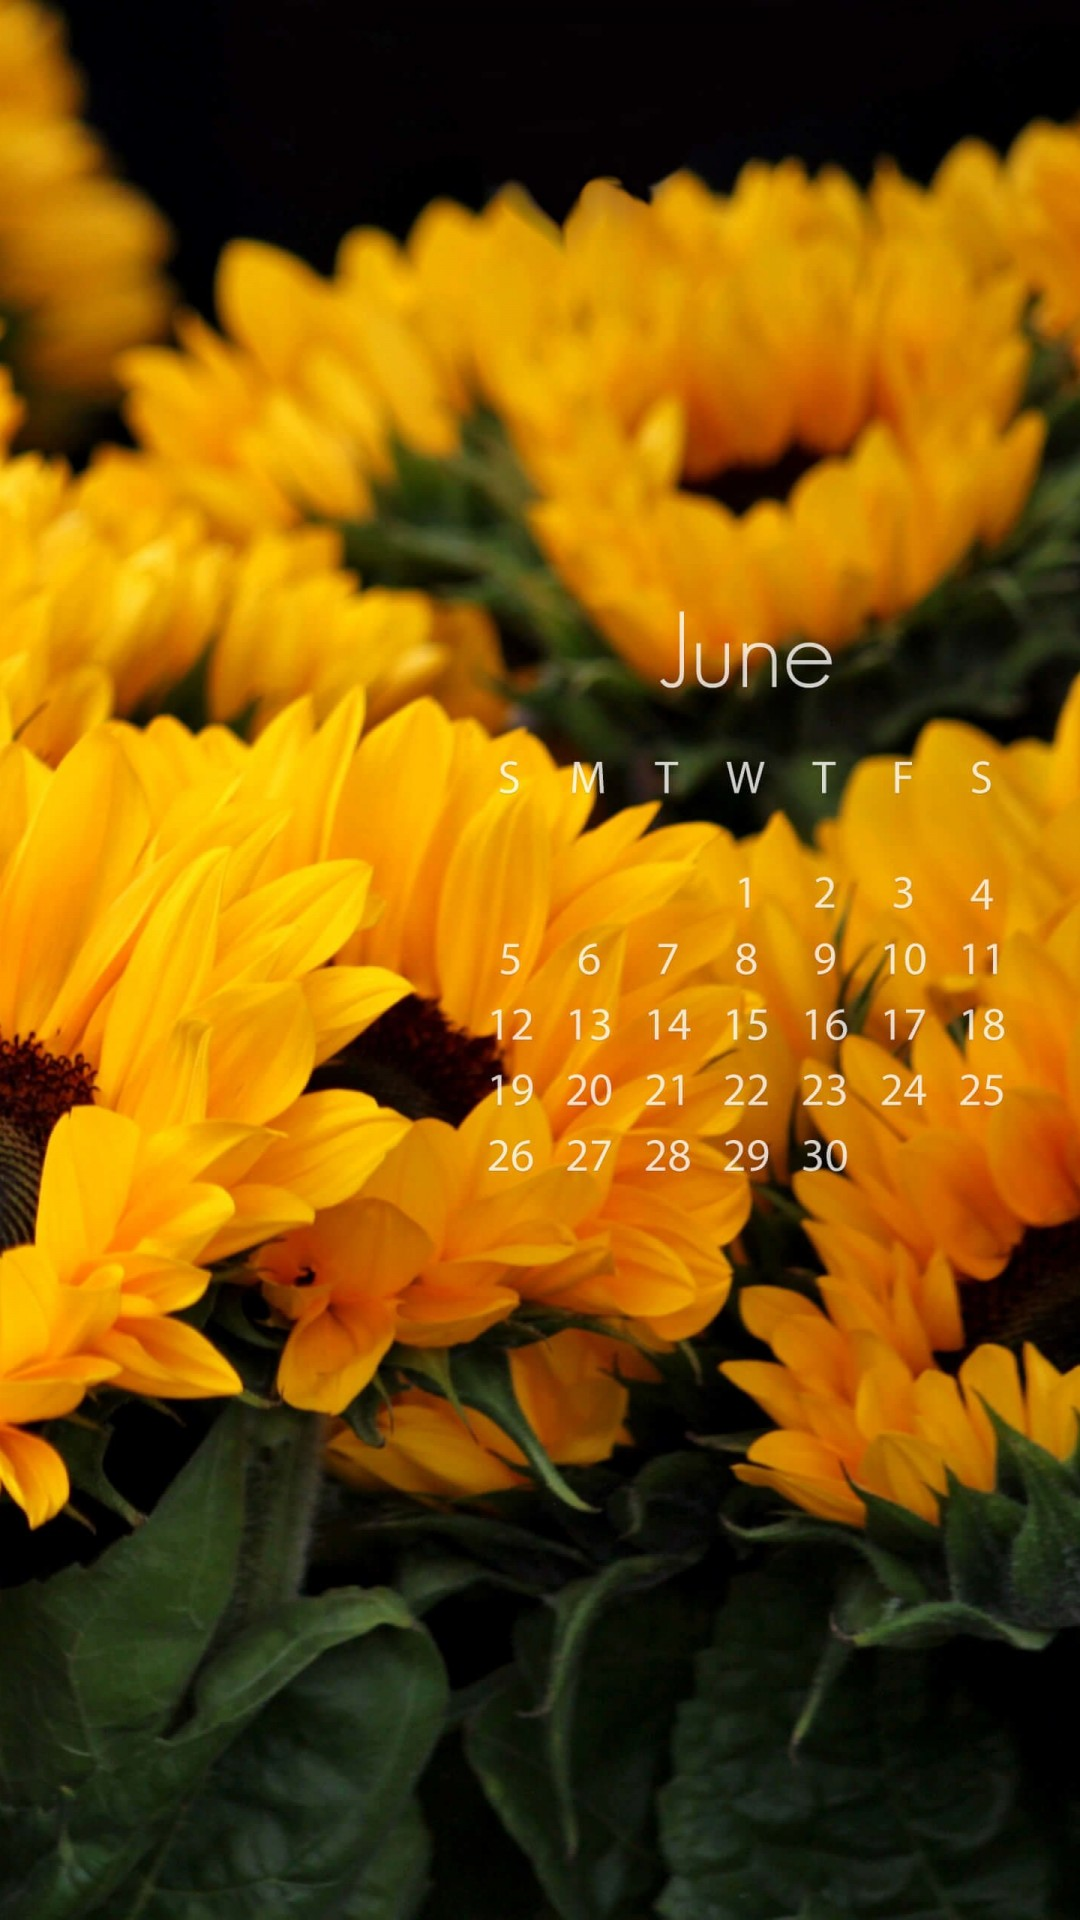 June 2016 Calendar Wallpaper for Google Nexus 5X